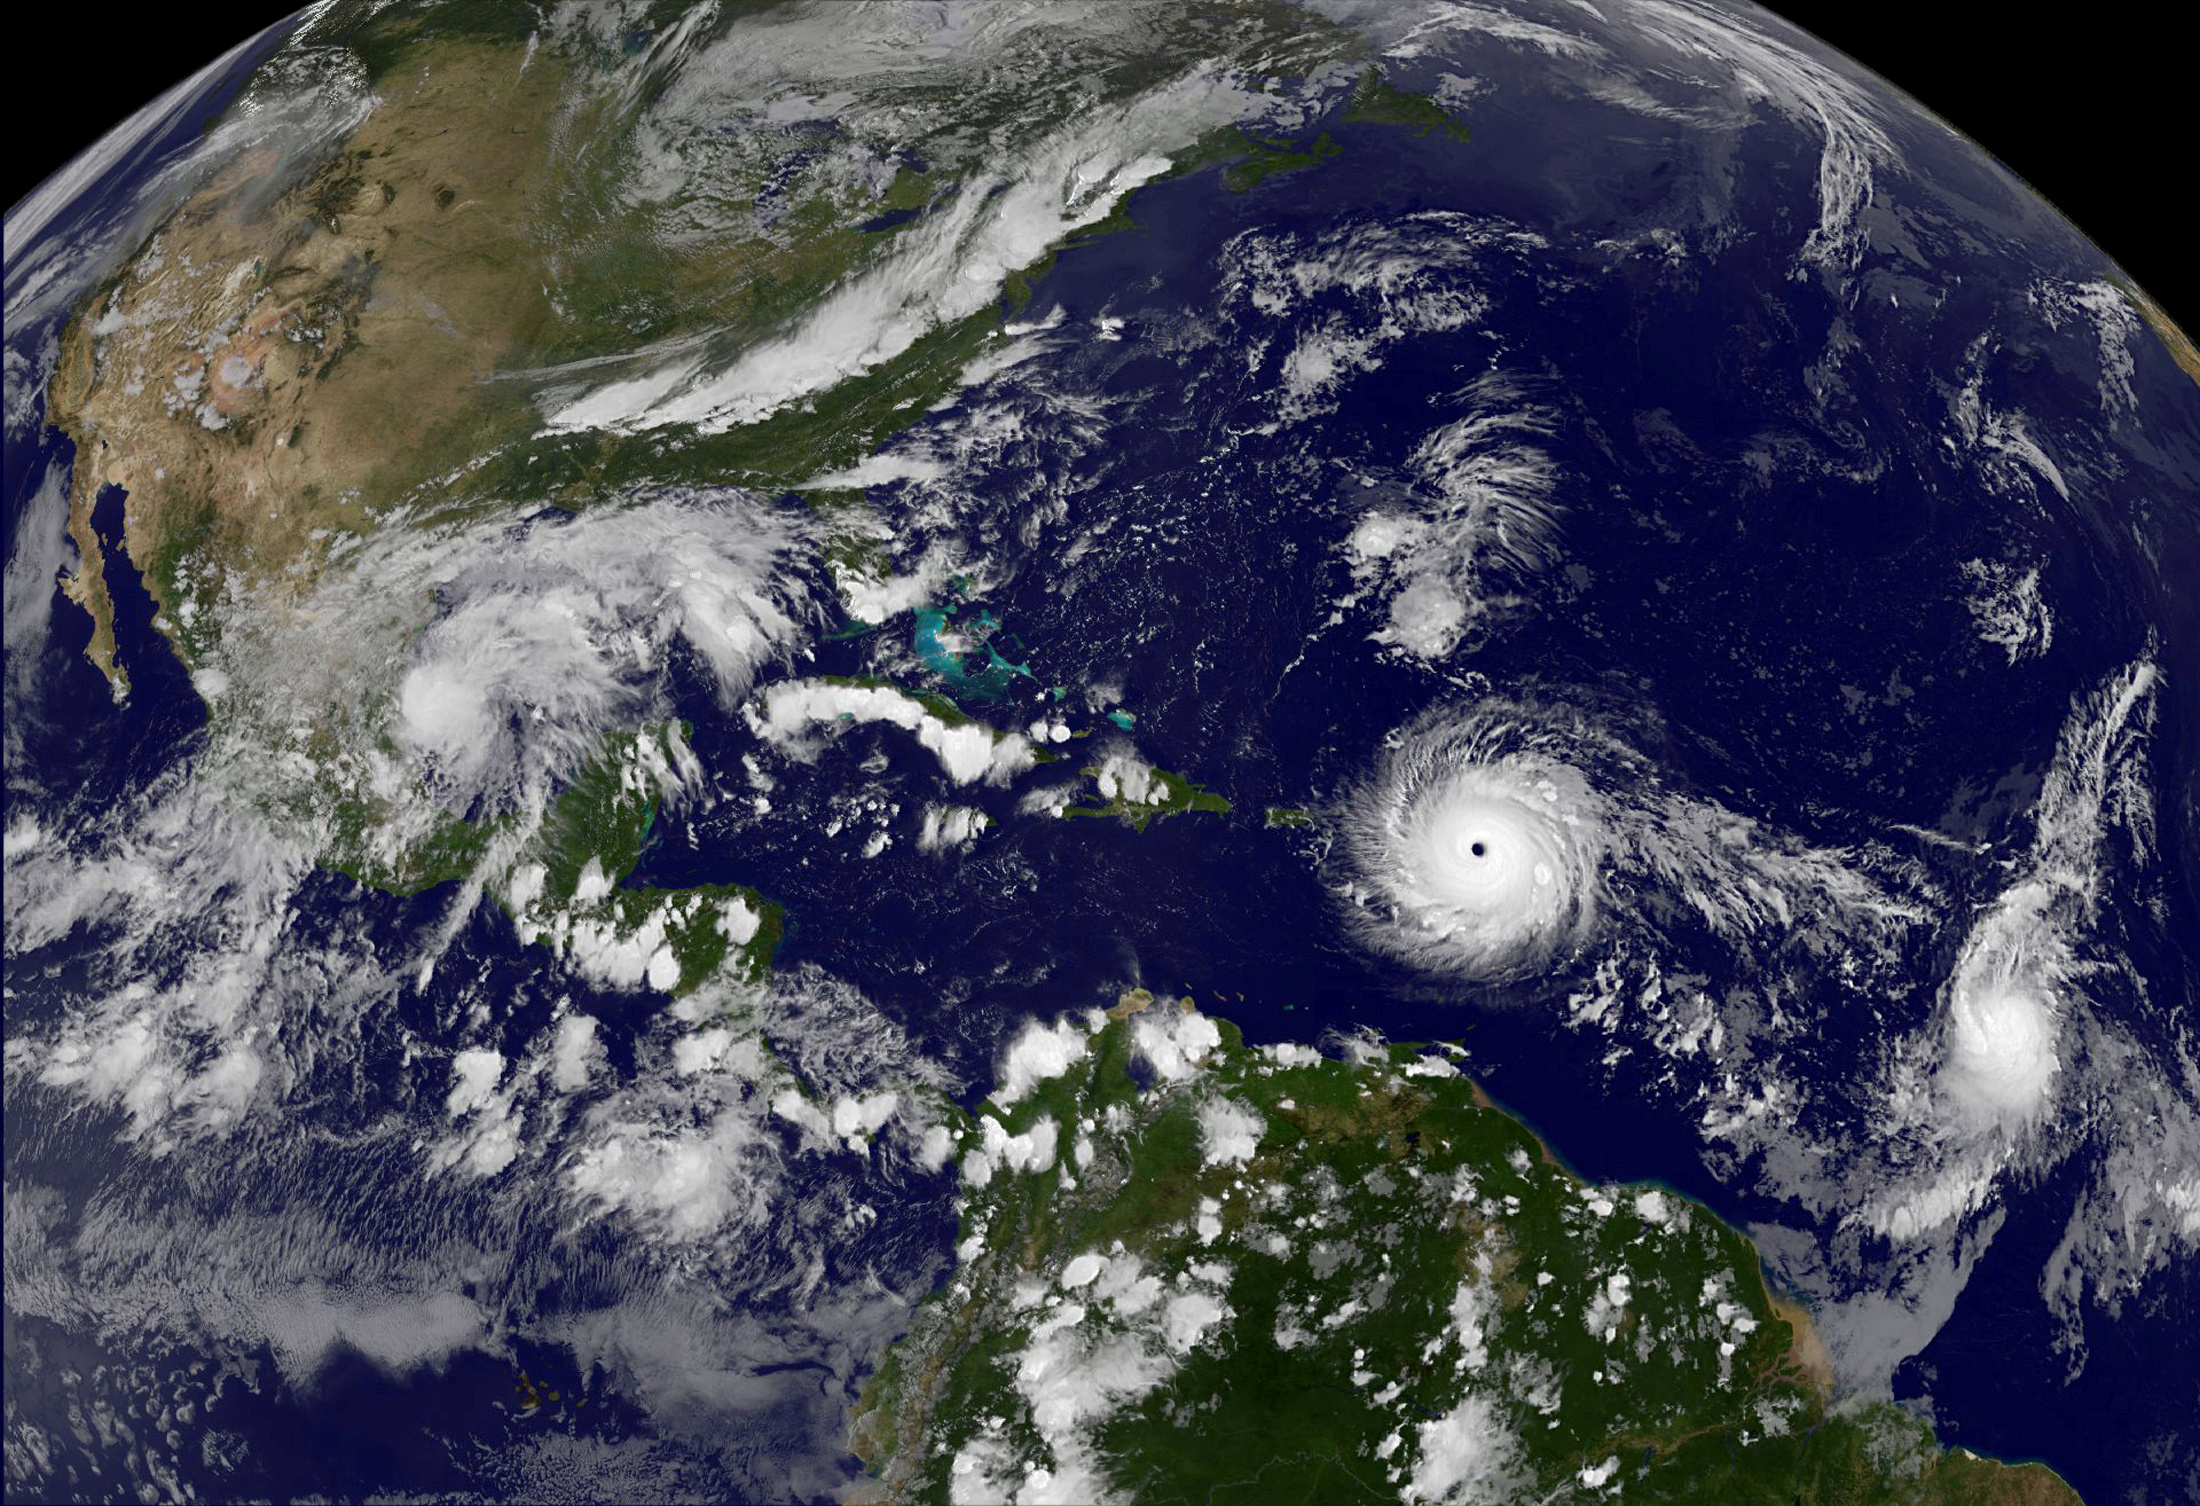 Hurricane Irma a record Category 5 storm churns across the Atlantic Ocean on a collision course with Puerto Rico and the Virgin Islands